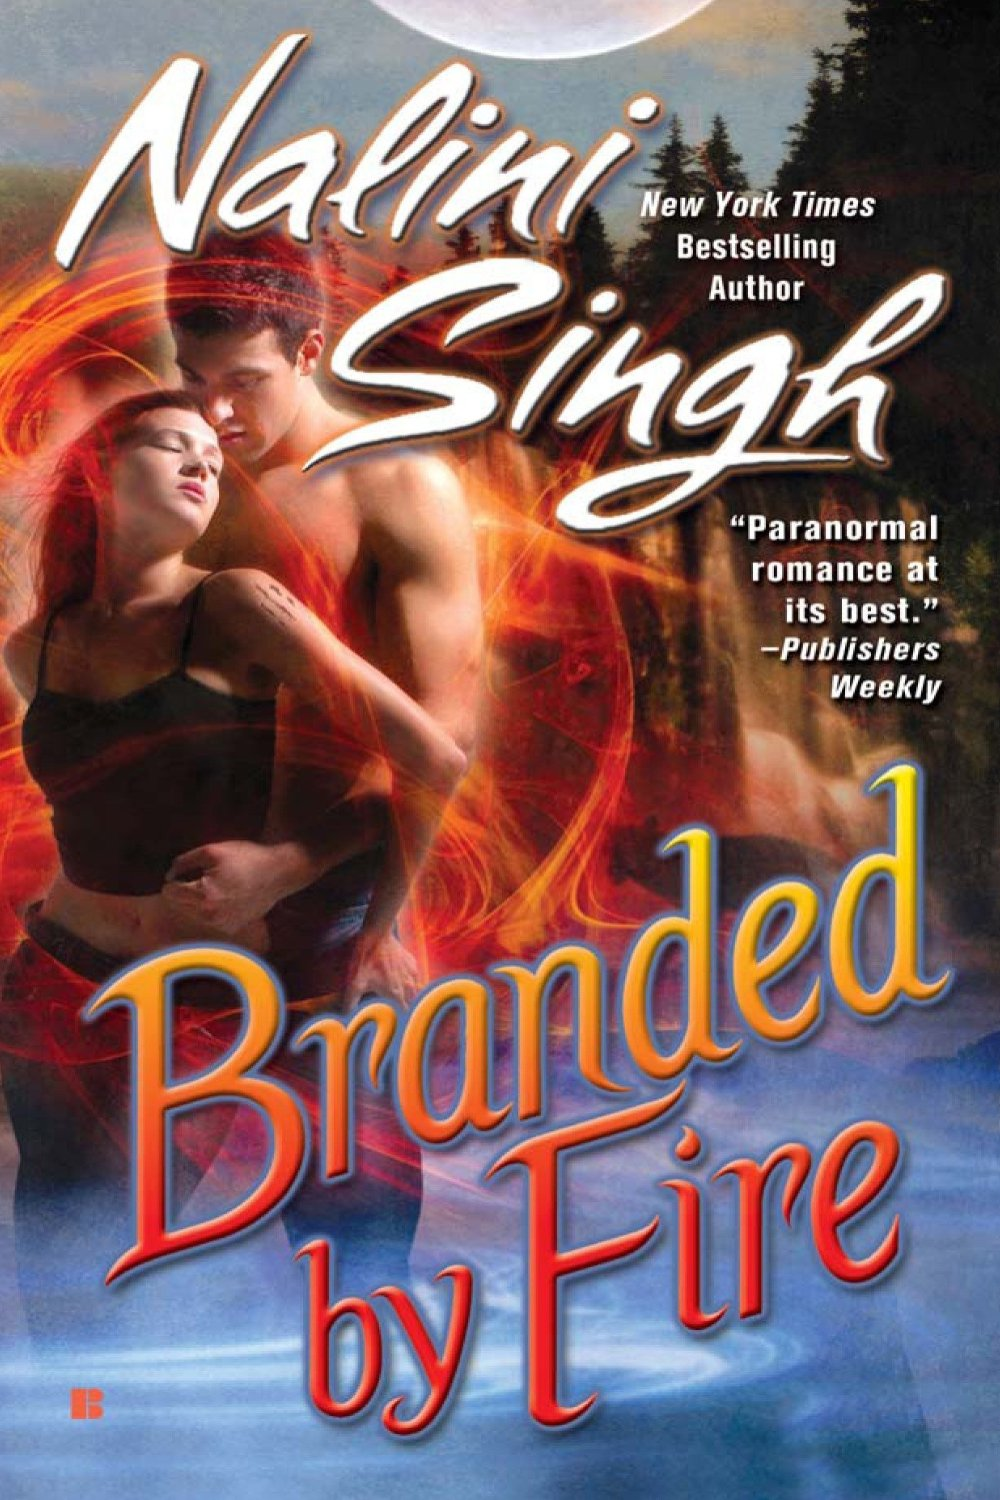 S2 E14 Branded by Fire by Nalini Singh